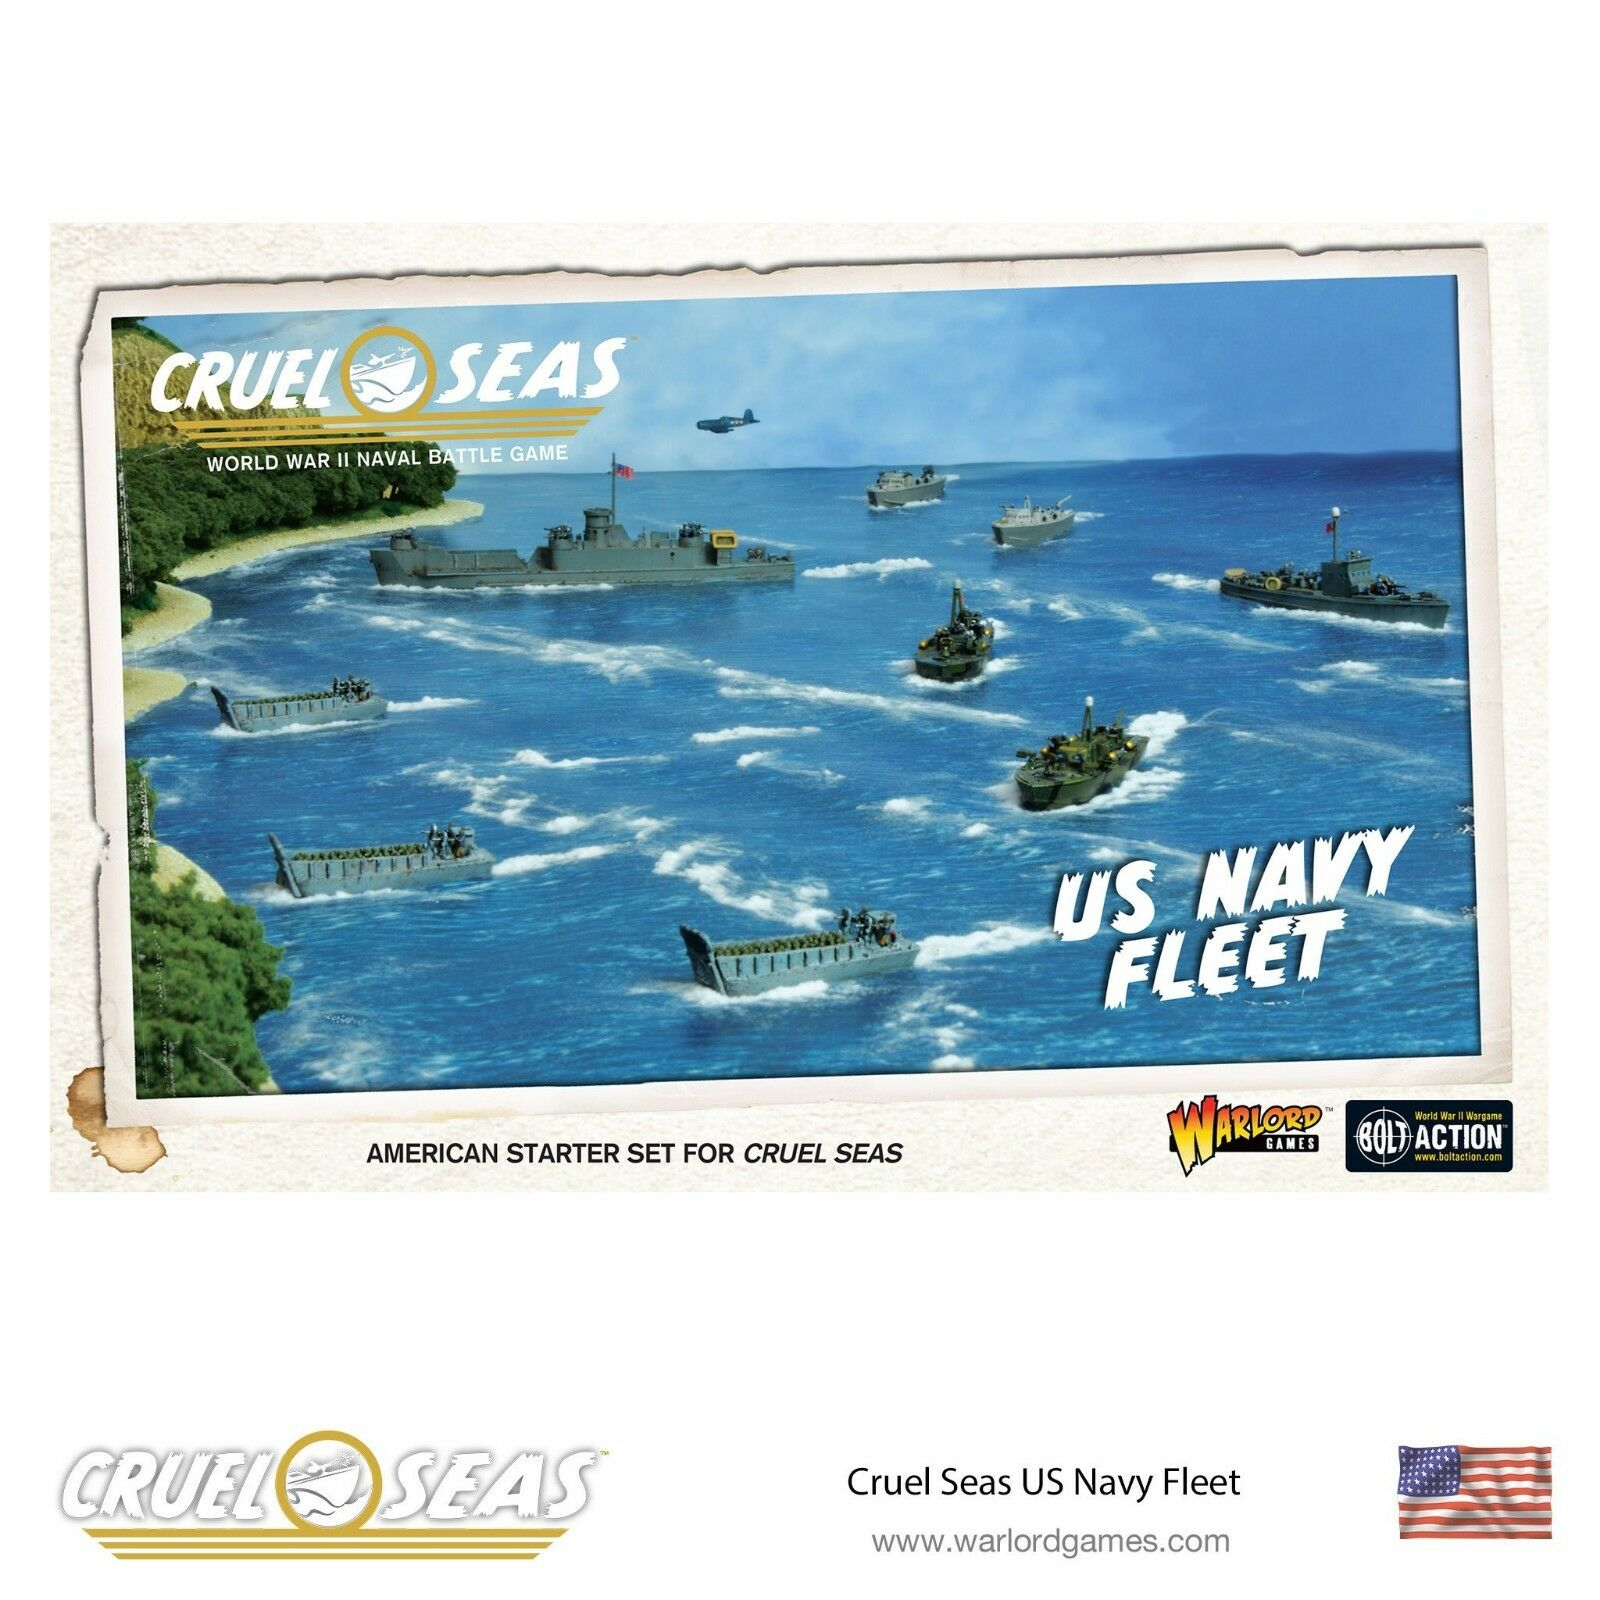 WARLORD GAMES - CRUEL SEAS - US NAVY FLEET - BNIB